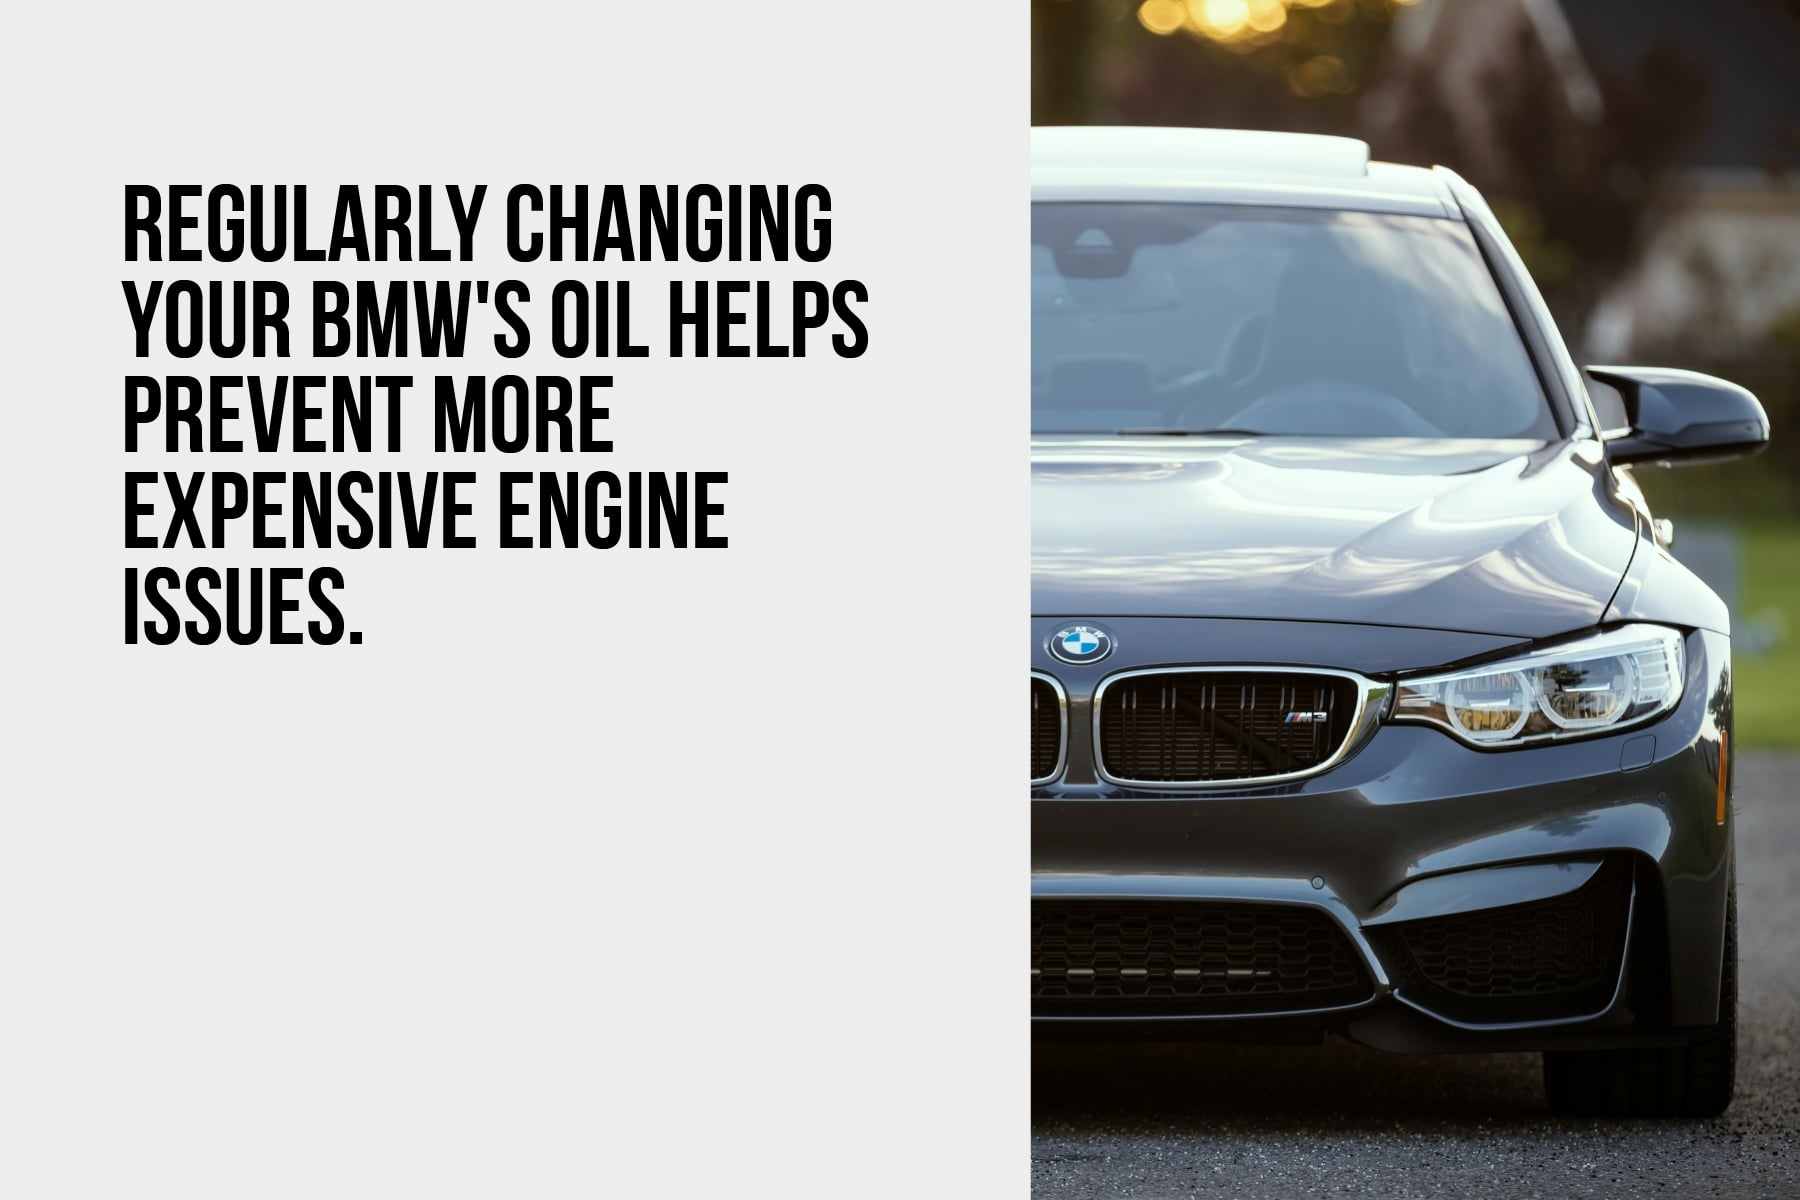 Regularly change your BMW's oil